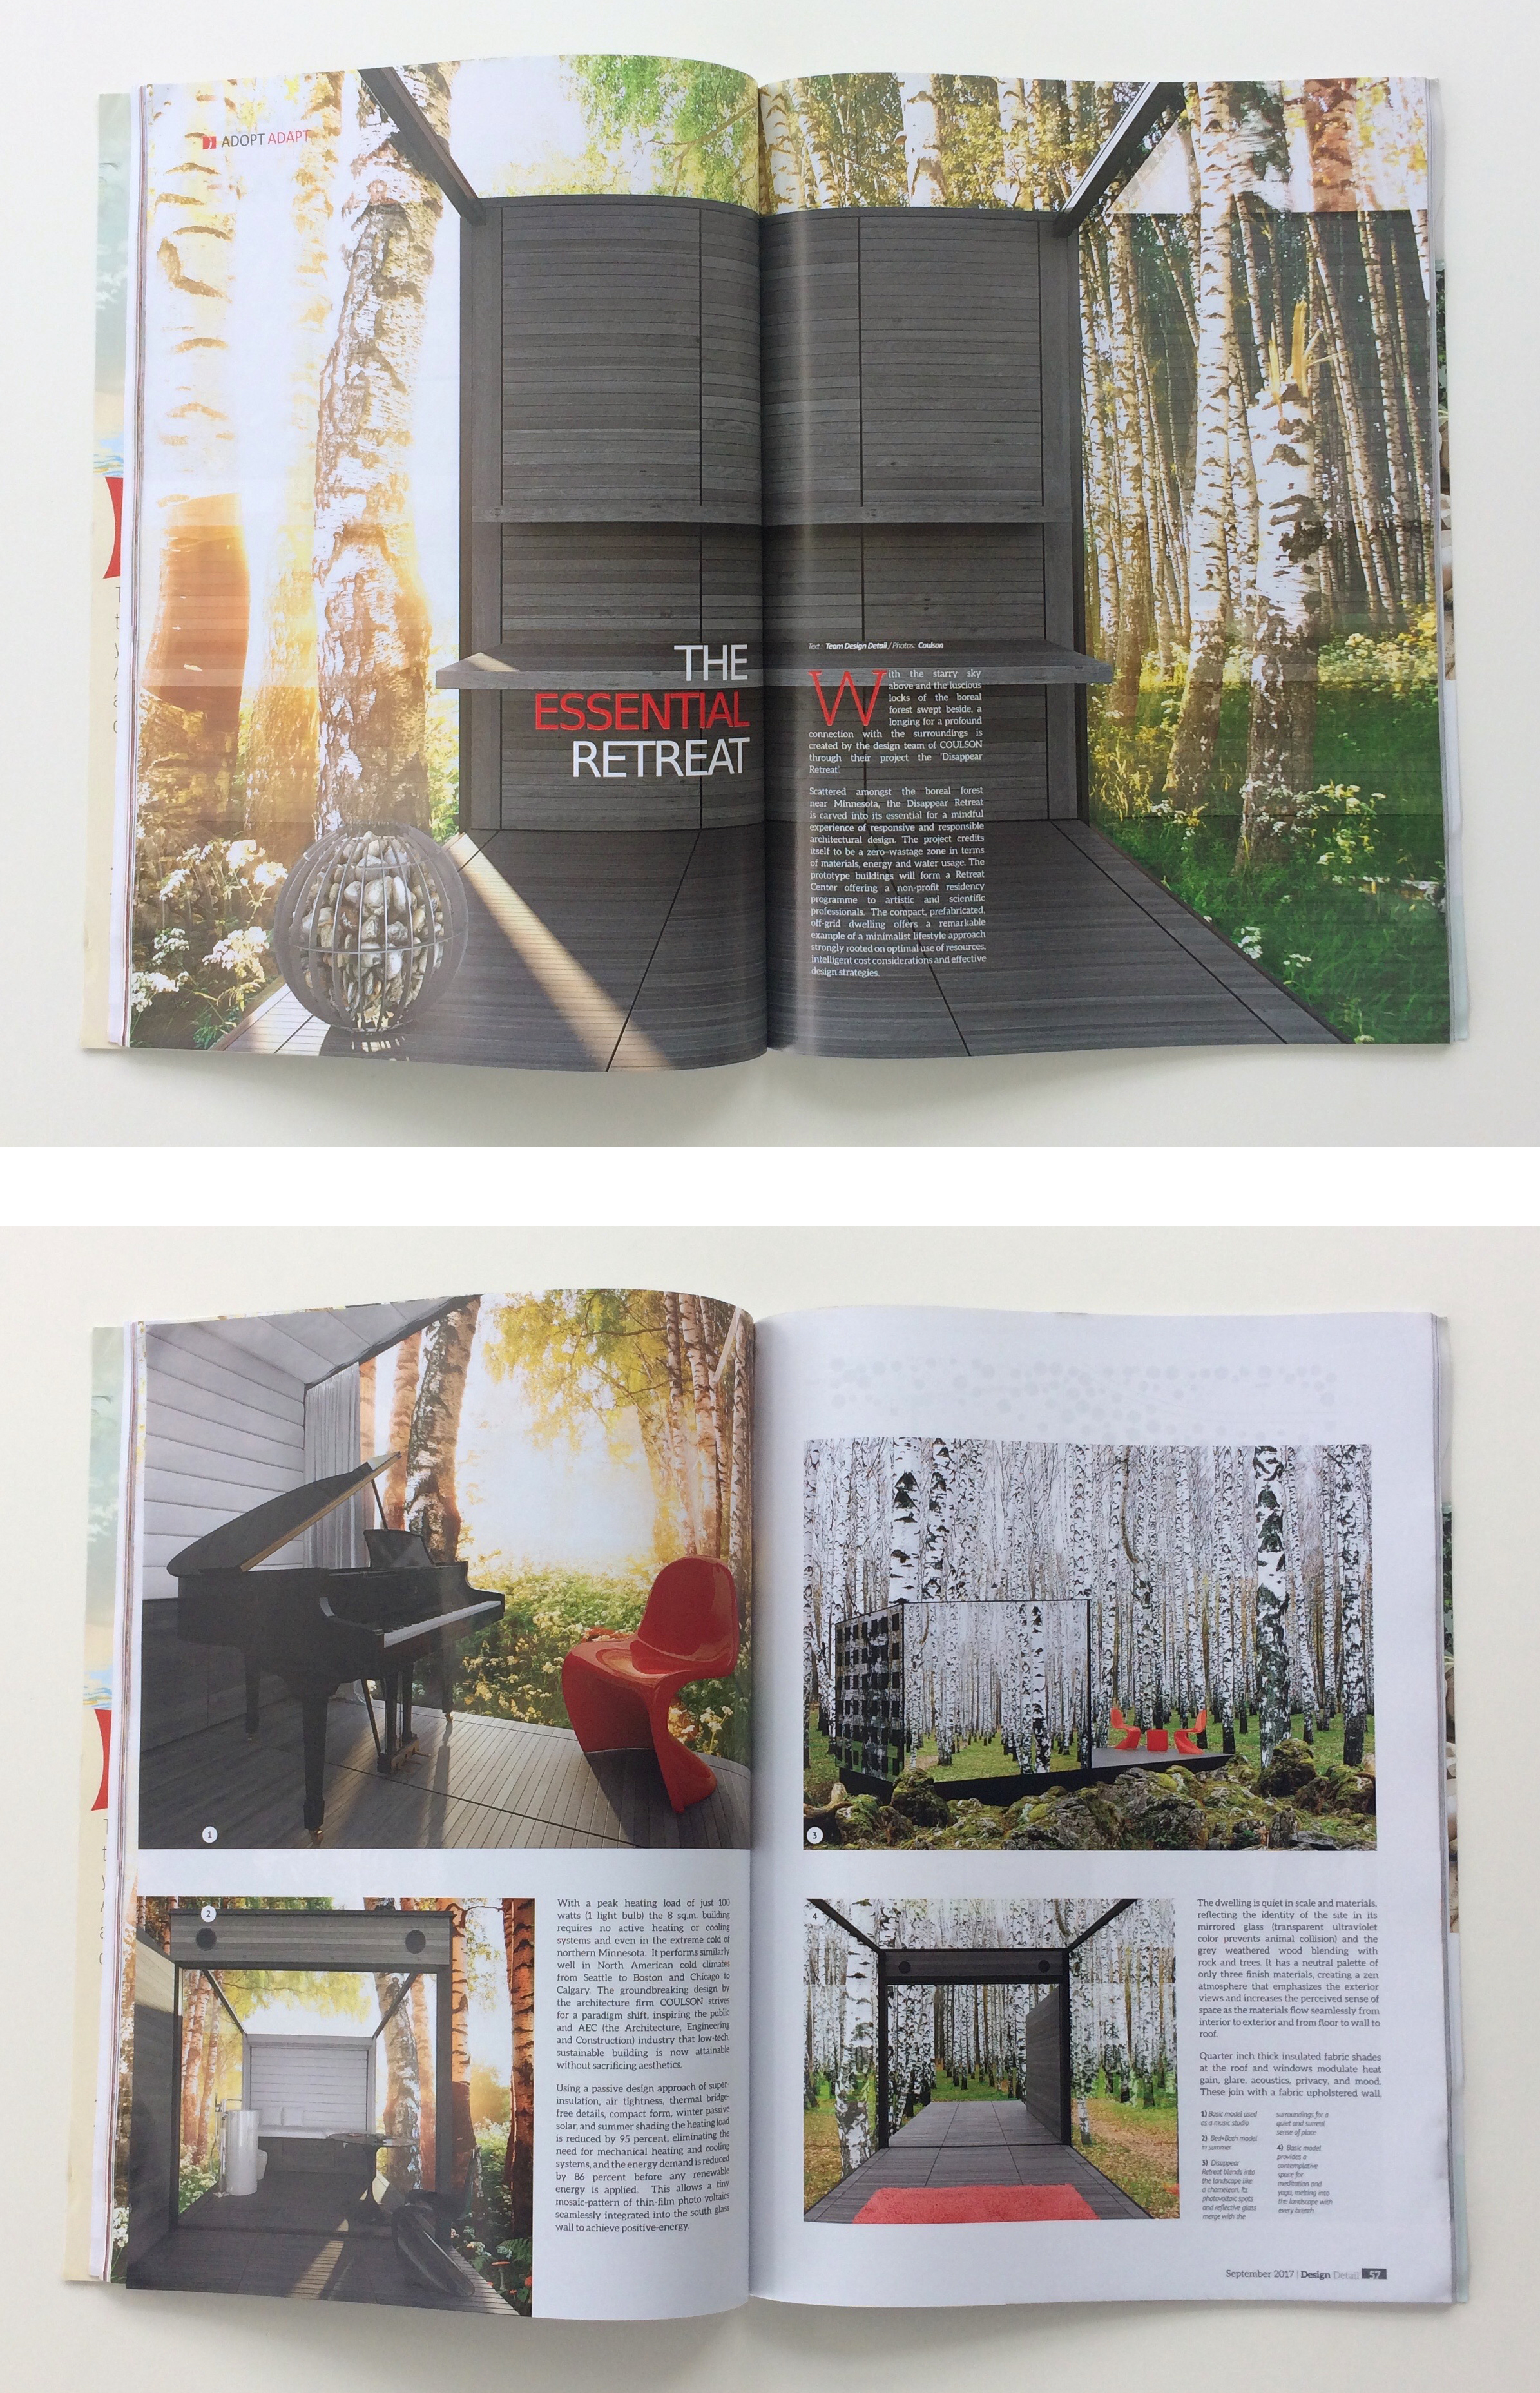 Disappear_Retreat_copyright_COULSON_DesignDETAILmagazine_Oct1017_4.jpg